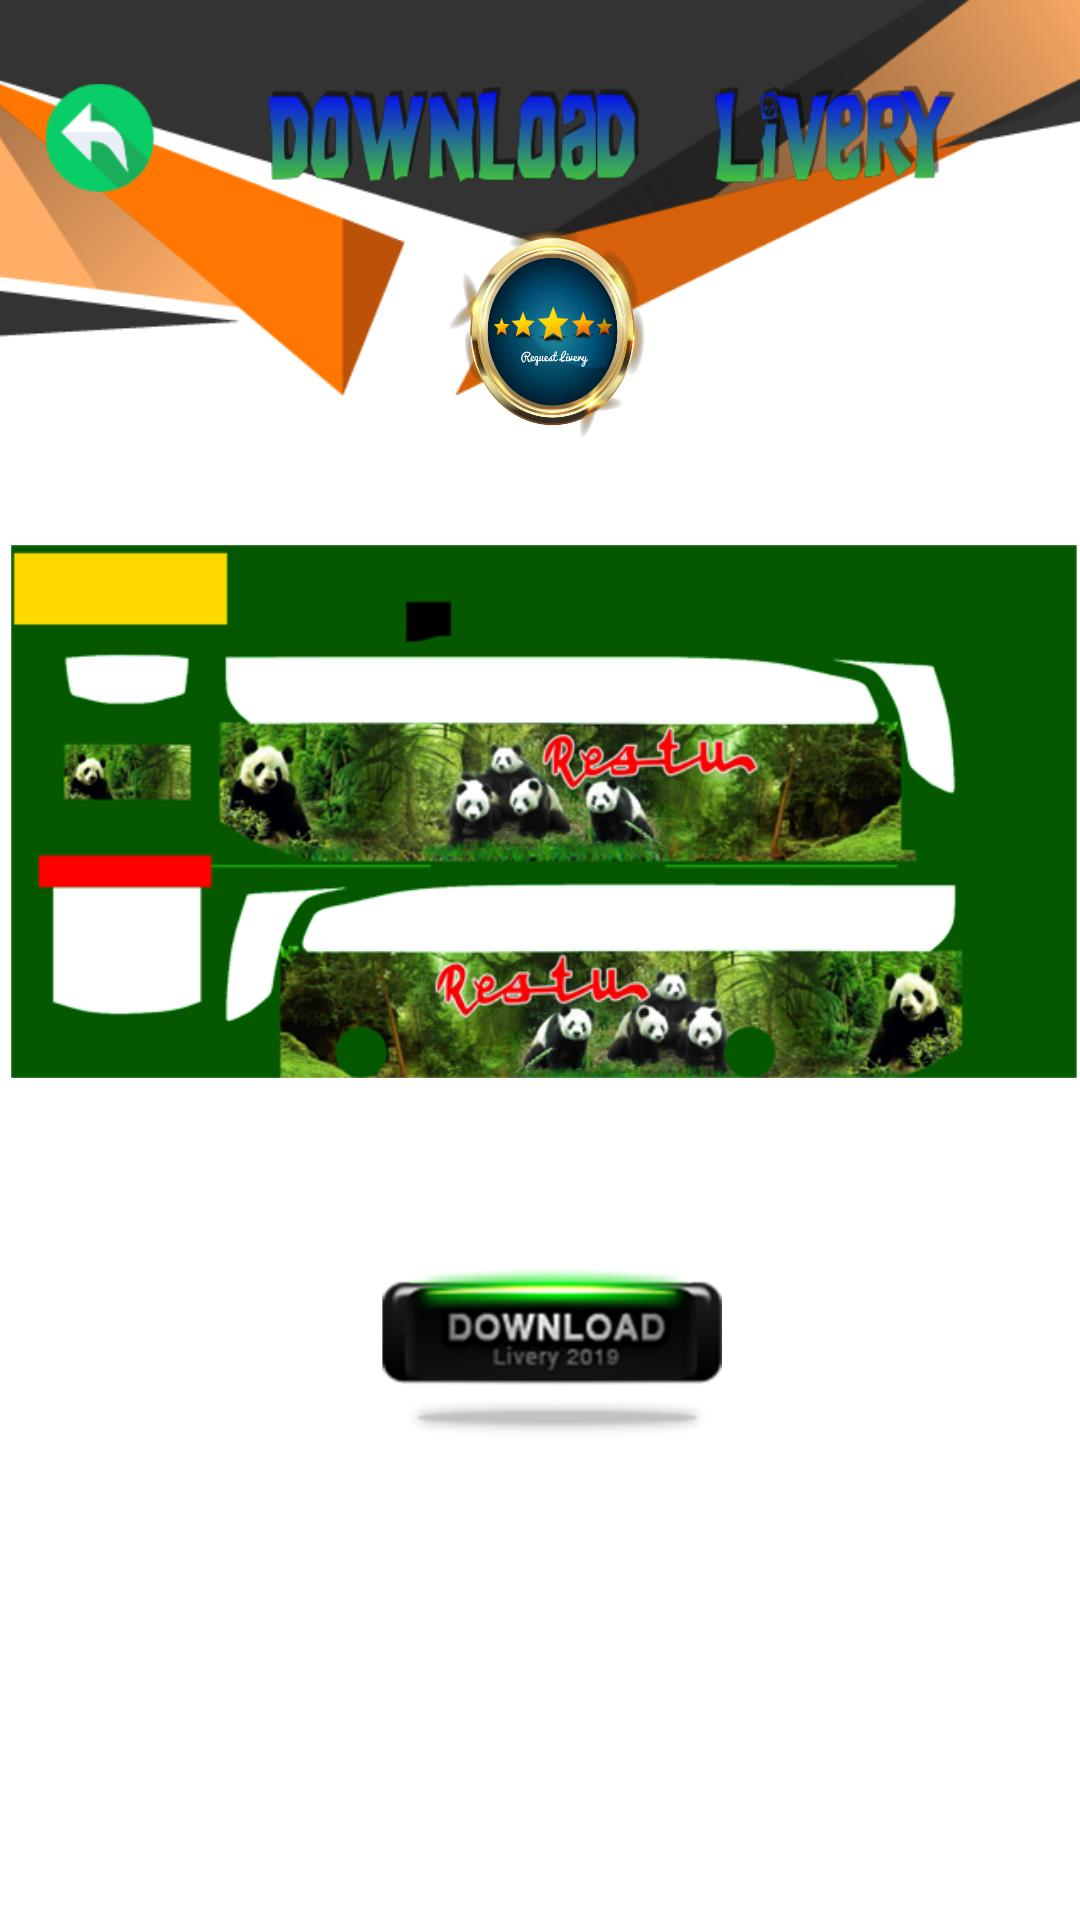 Bussid Indian MOD for Android - APK Download